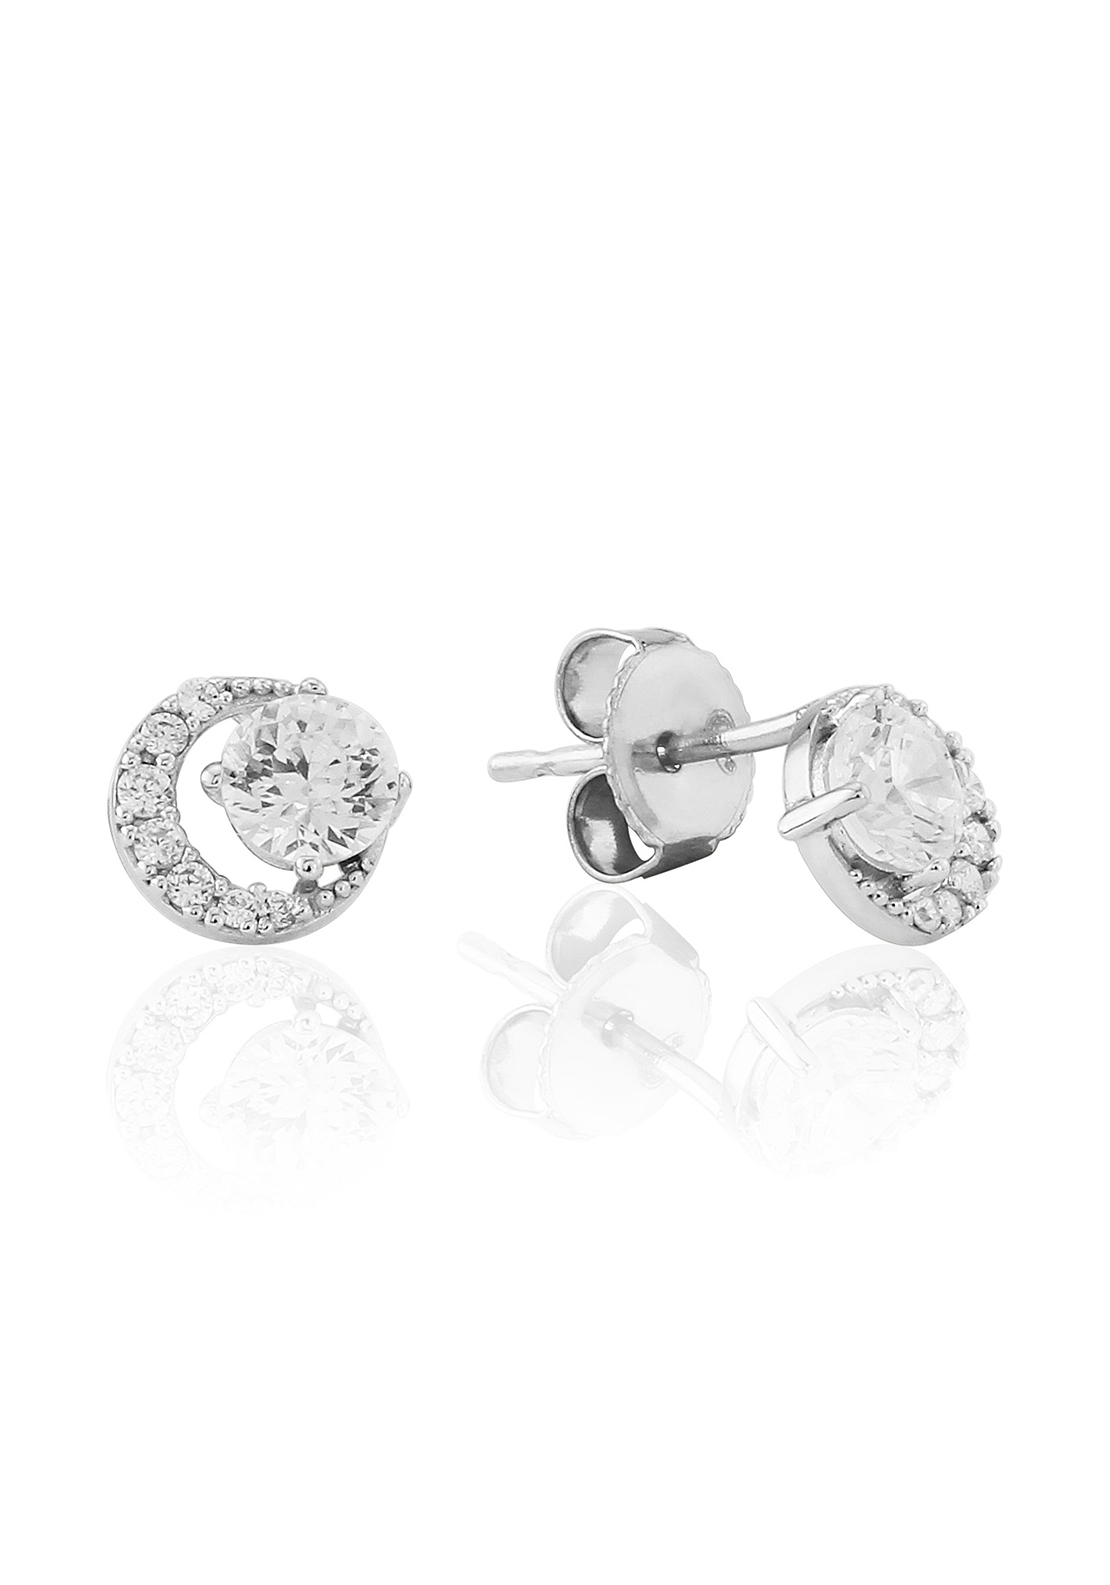 Waterford Crystal Interlinked Pave Stud Earrings, Silver